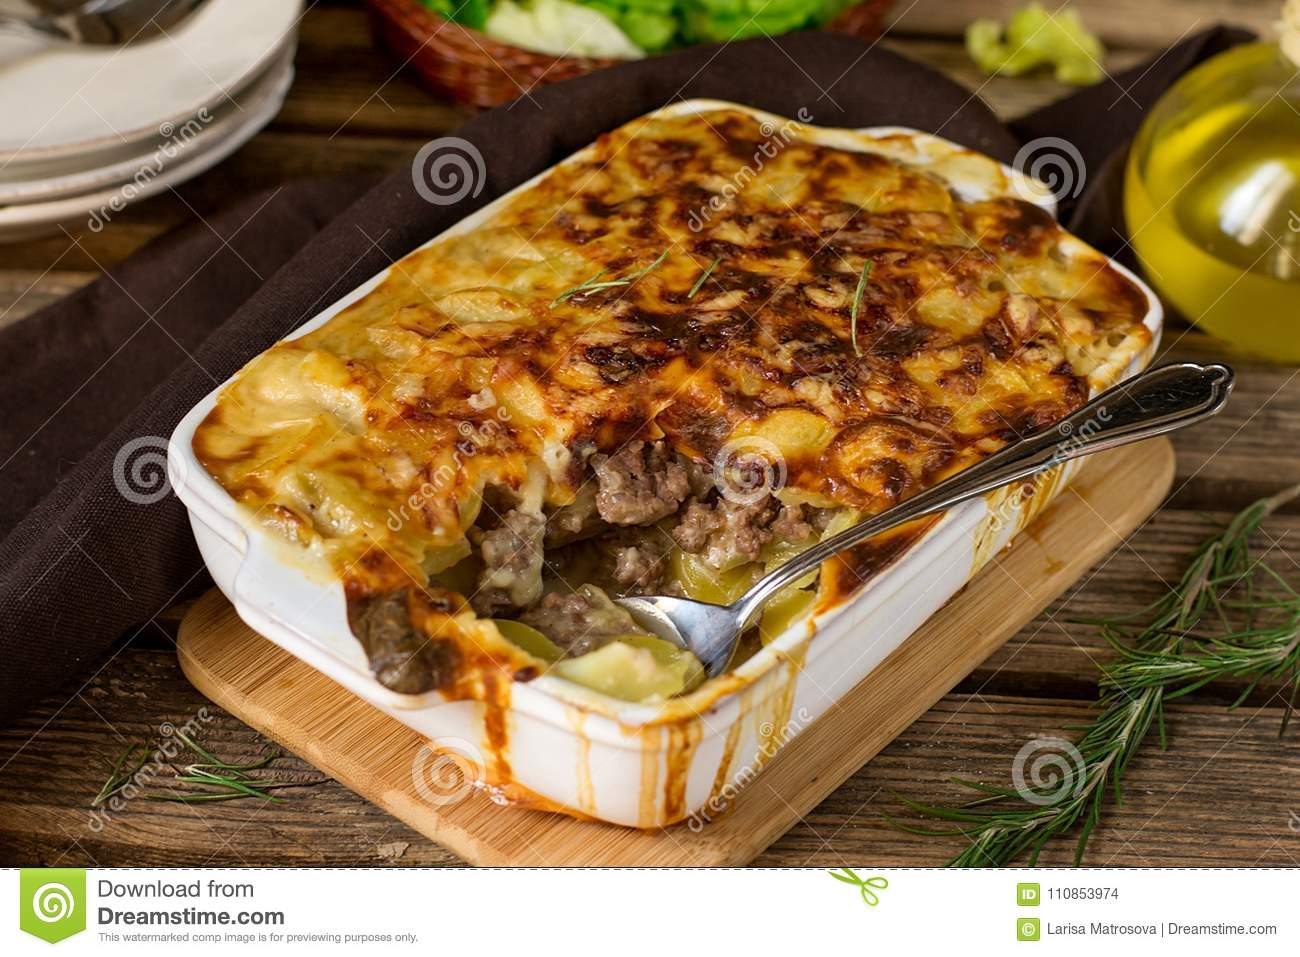 le gratin de pomme de terre de plat de four avec du boeuf hach et le bechamel sauce photo stock. Black Bedroom Furniture Sets. Home Design Ideas